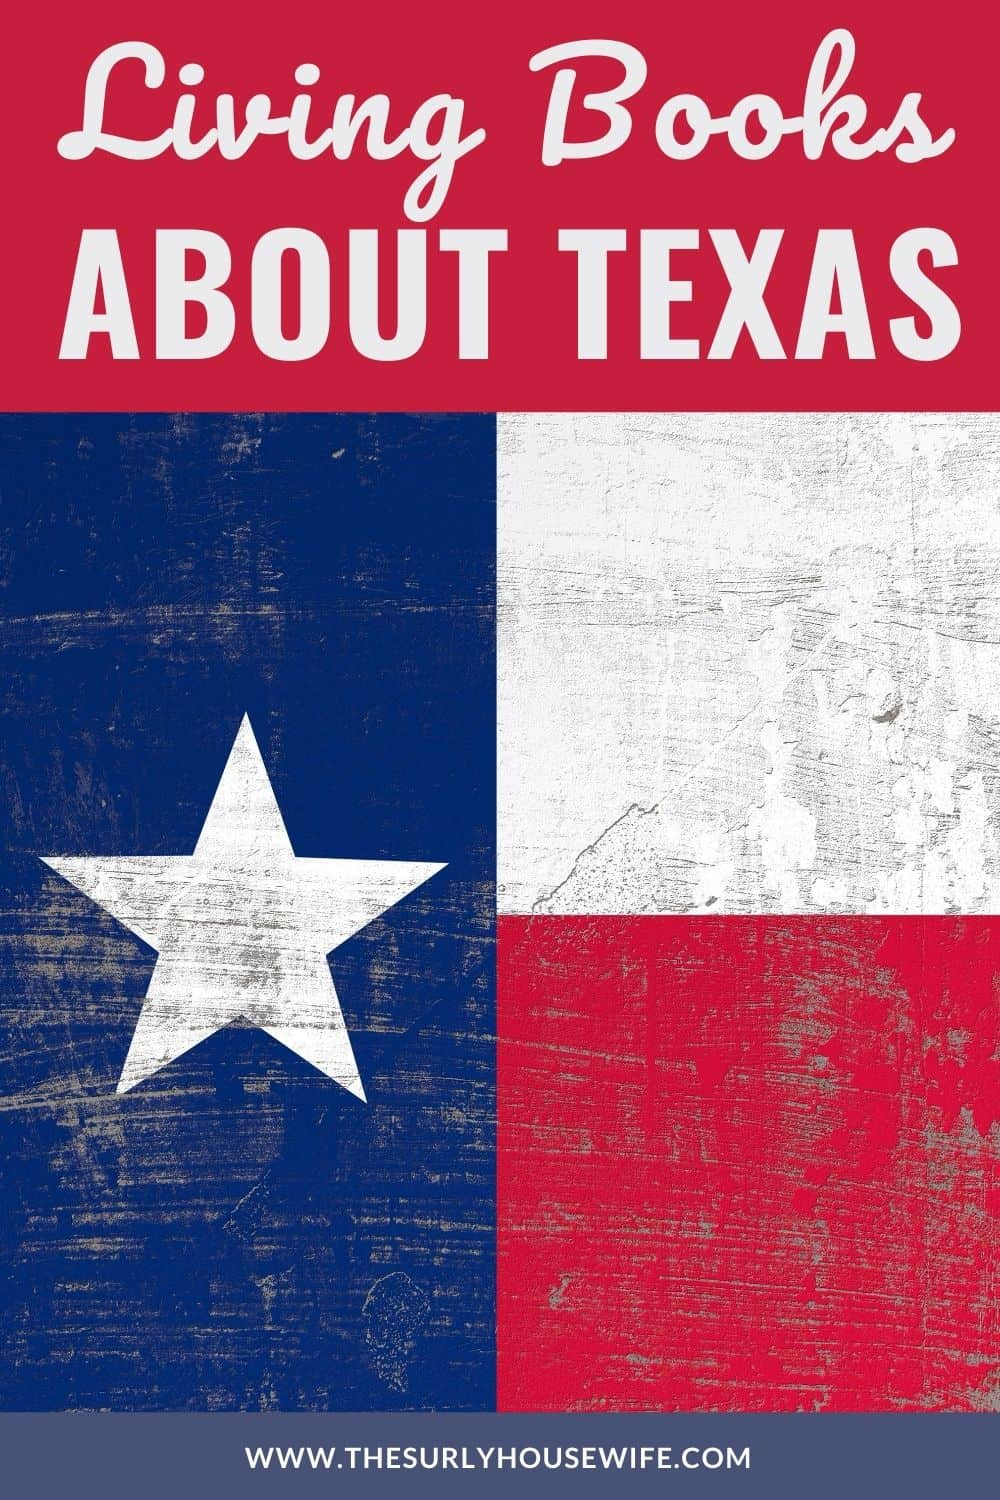 Looking for books about Texas? Then check out this post! It contains children's books, chapter books, and picture books about the Lone Star State!